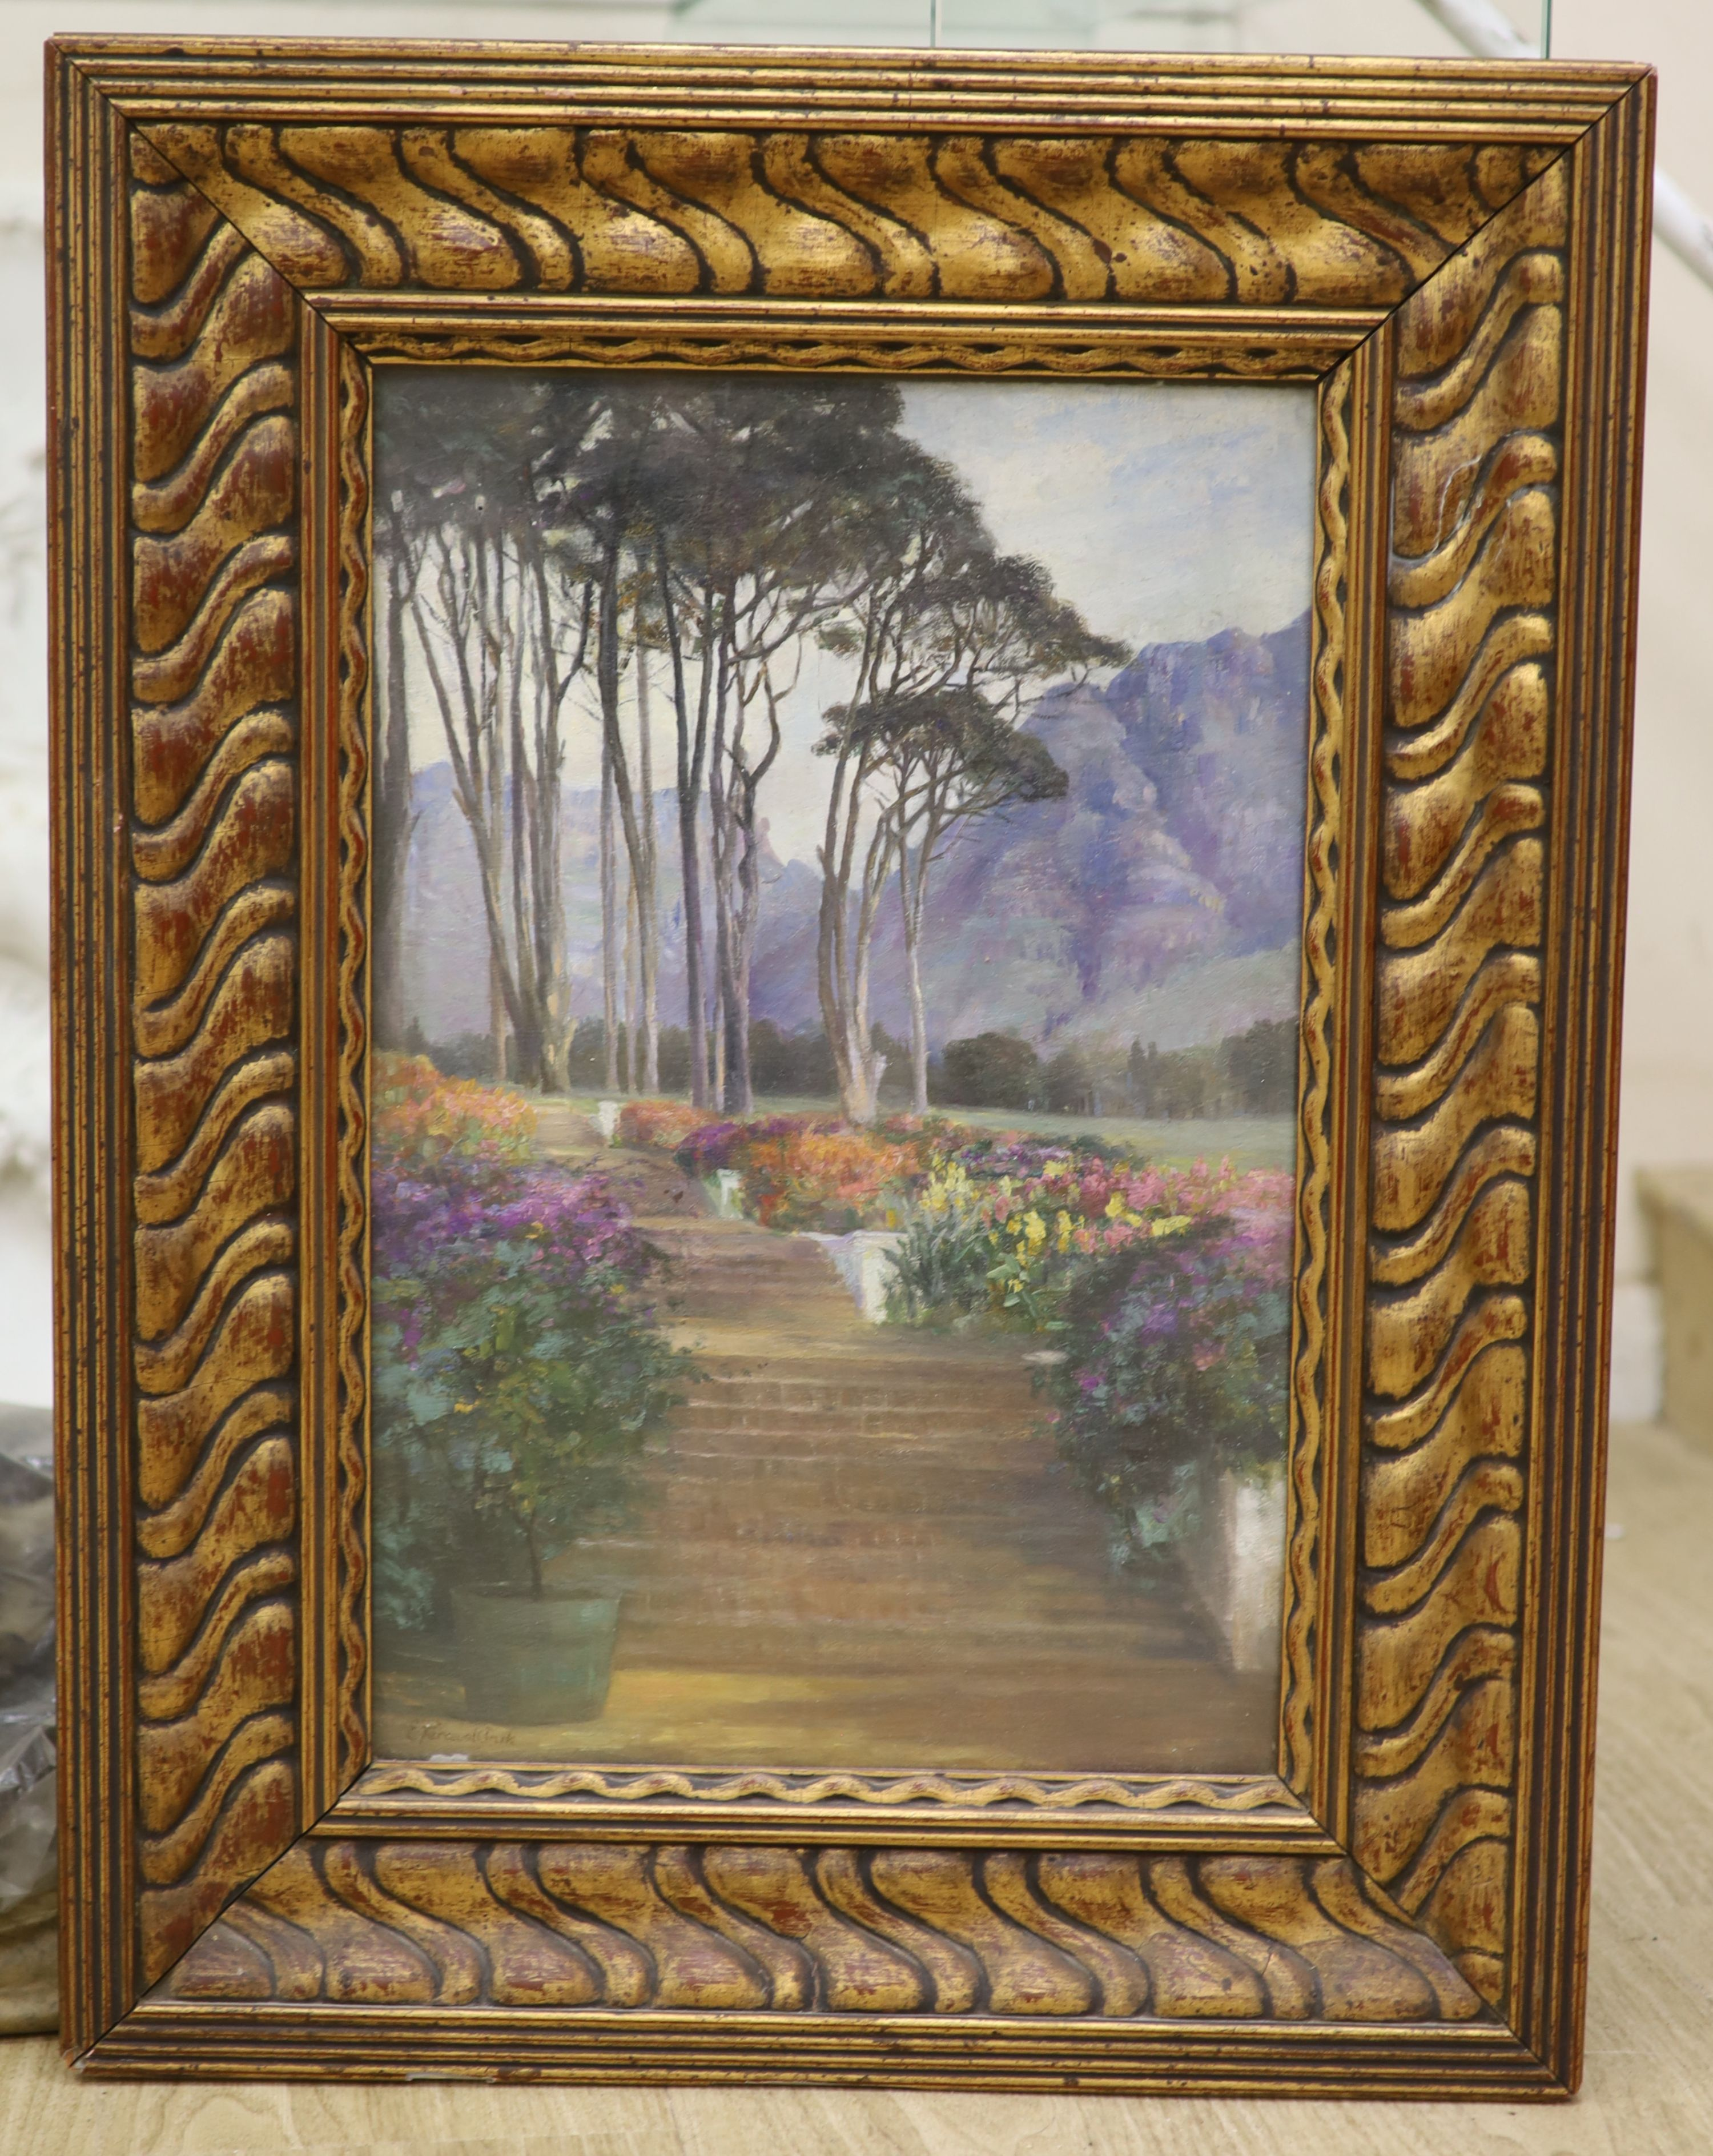 Evelyn Perceval-Clark, oil on board, The Terrace Garden, Groot, signed, 45 x 30cm - Image 2 of 3